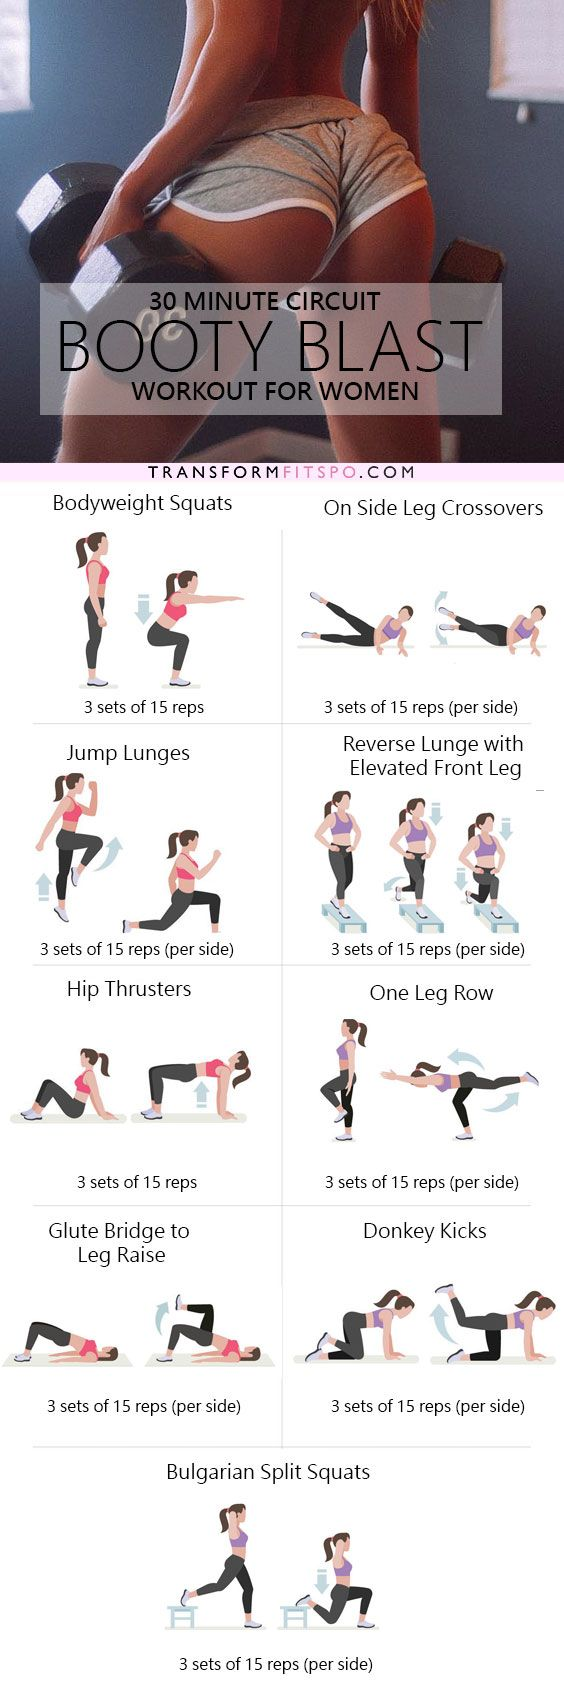 A killer 30 minute workout designed to target your glutes, developing a larger, rounder booty! Follow Personal Trainer at Pinterest.com/SuperDFitness Now!